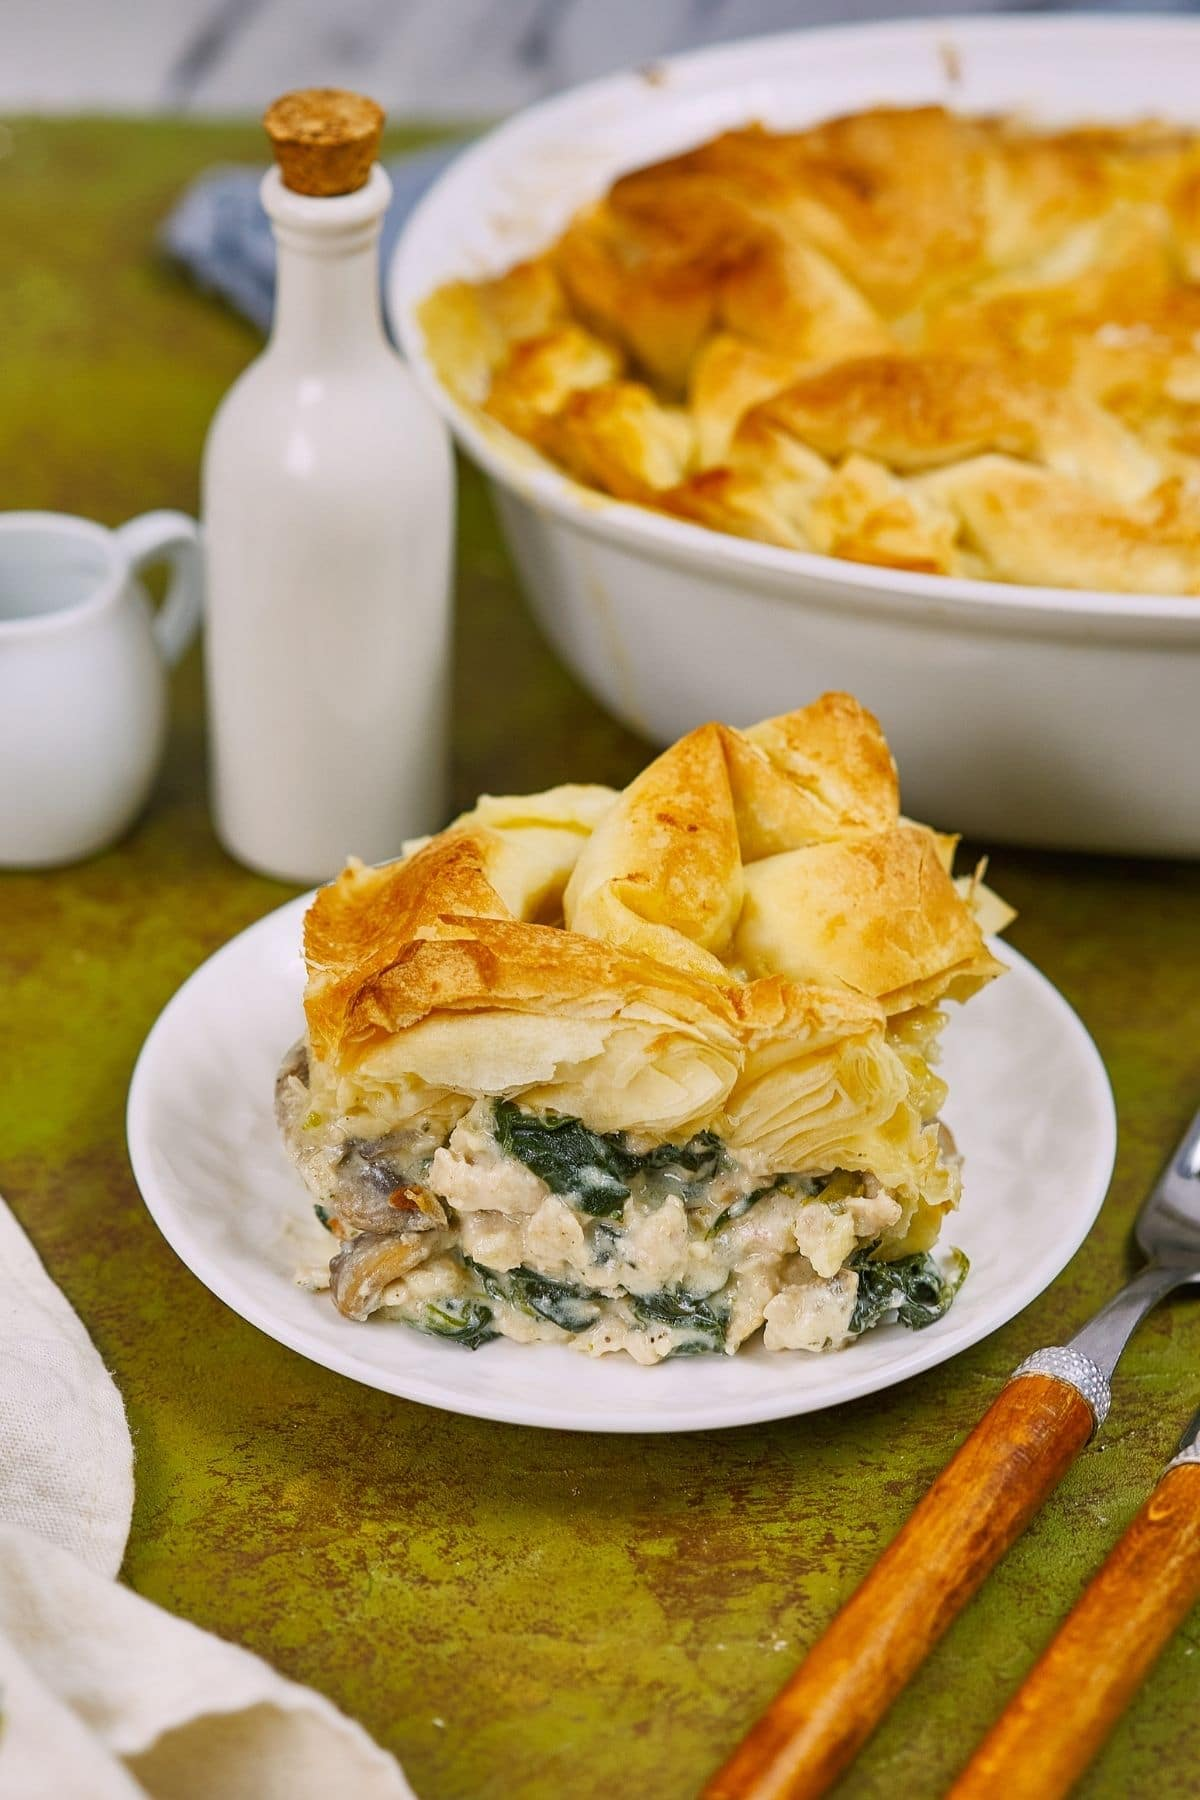 Greek spanakopita on white saucer next to wooden spoon and fork